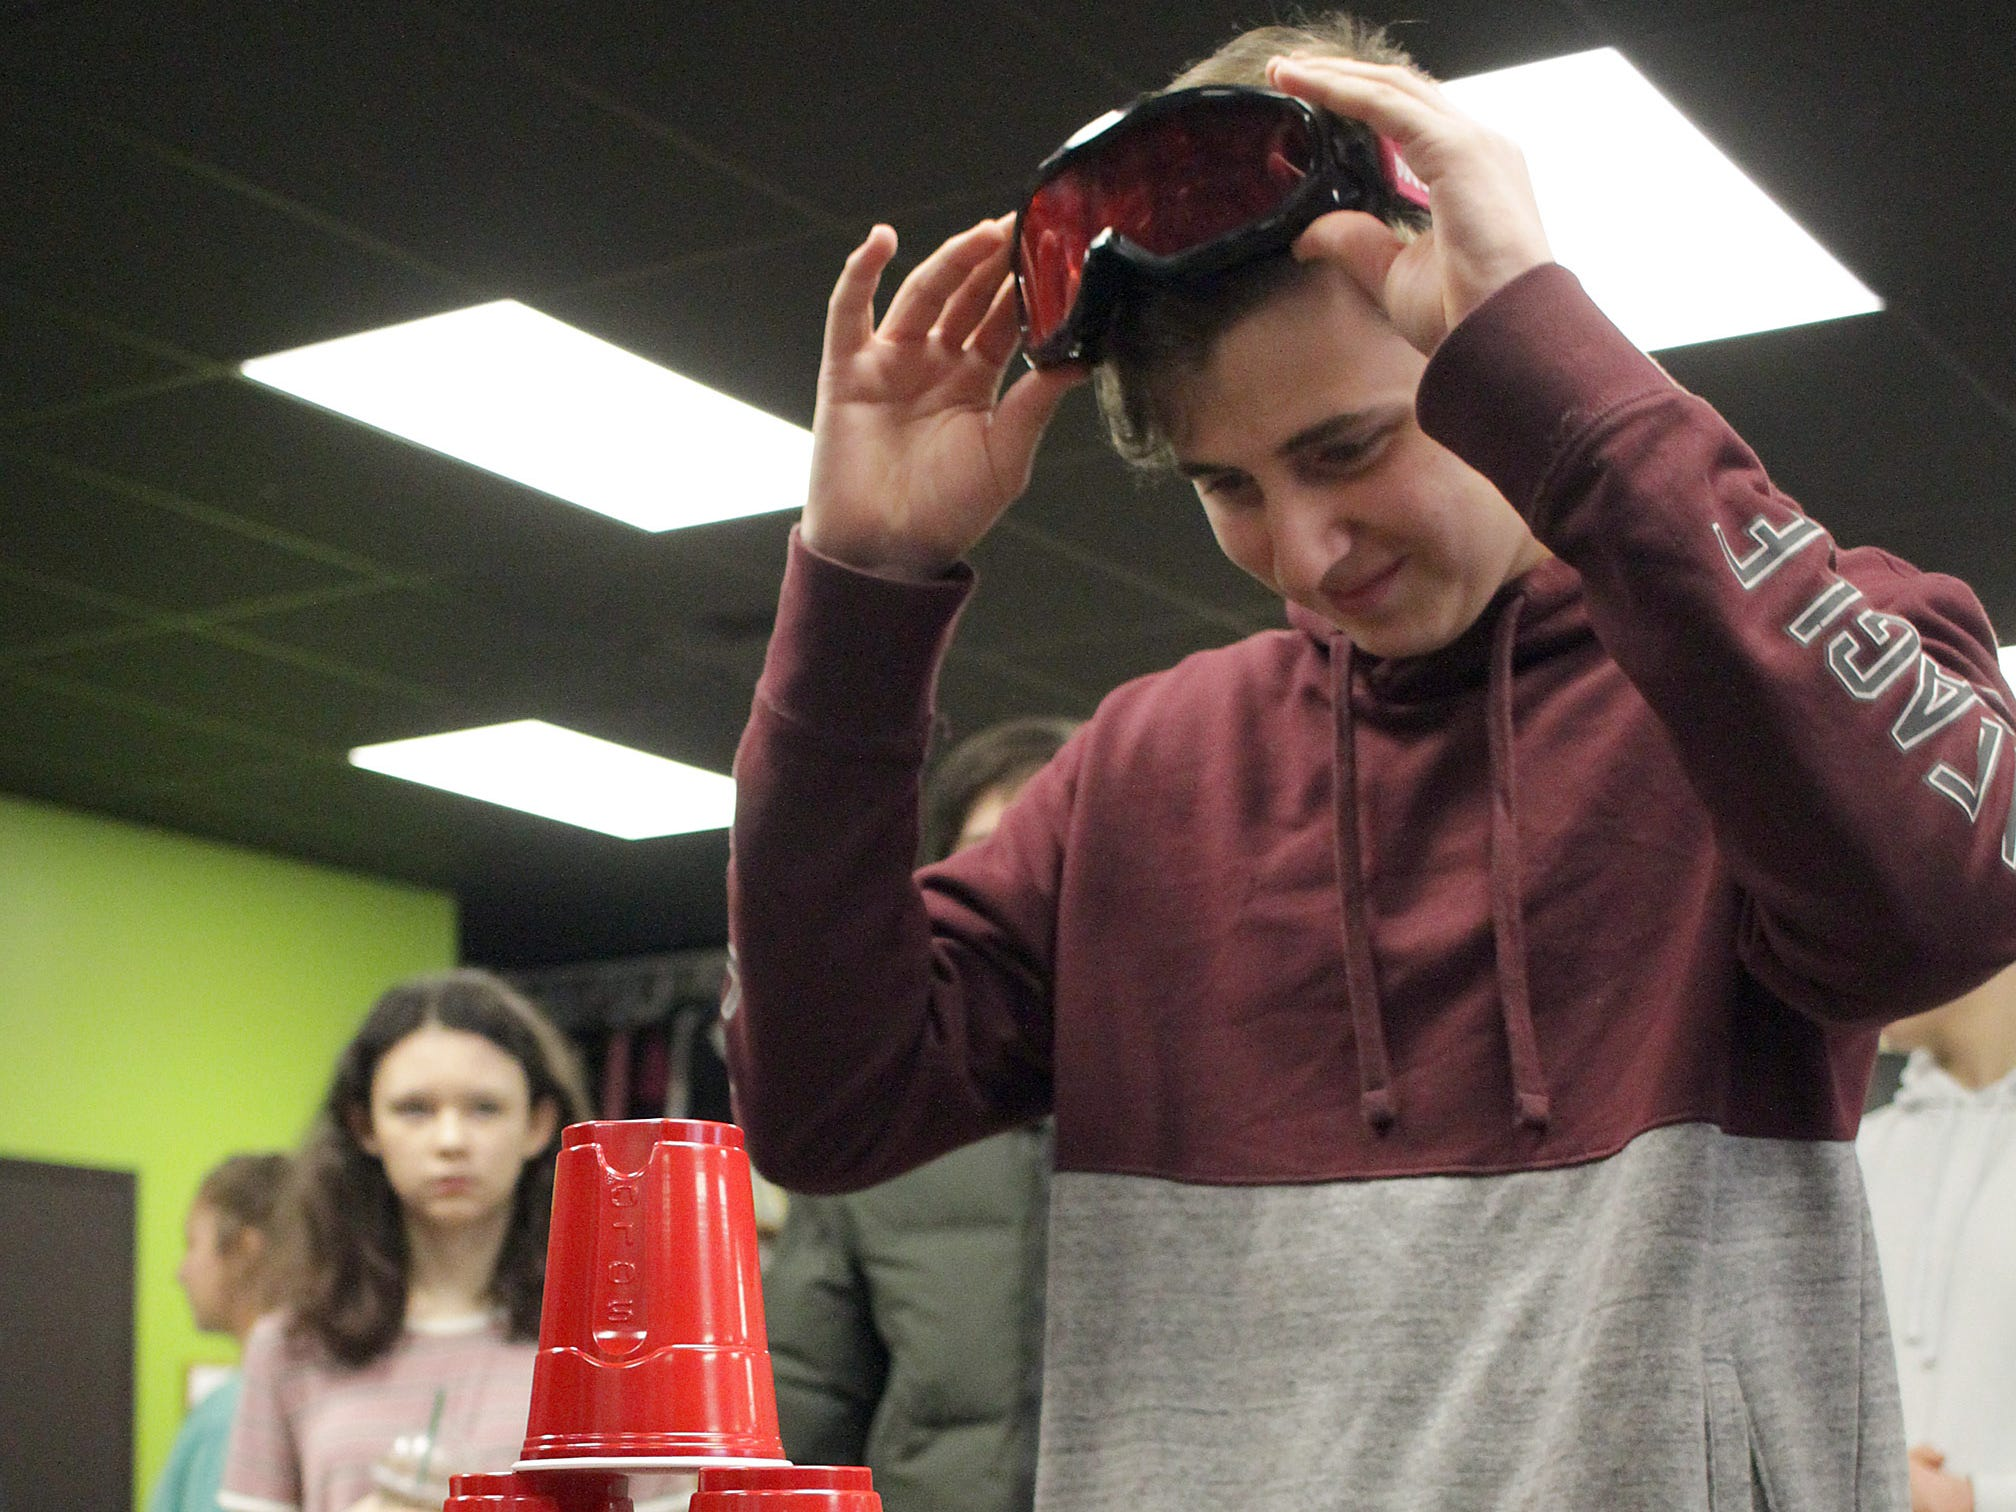 Colton Rutter takes a look at the cups he stacked in a depth perception exercise at the 4th Annual Teen Driver Safety Day in Gallatin , TN on Saturday, March 2, 2019.